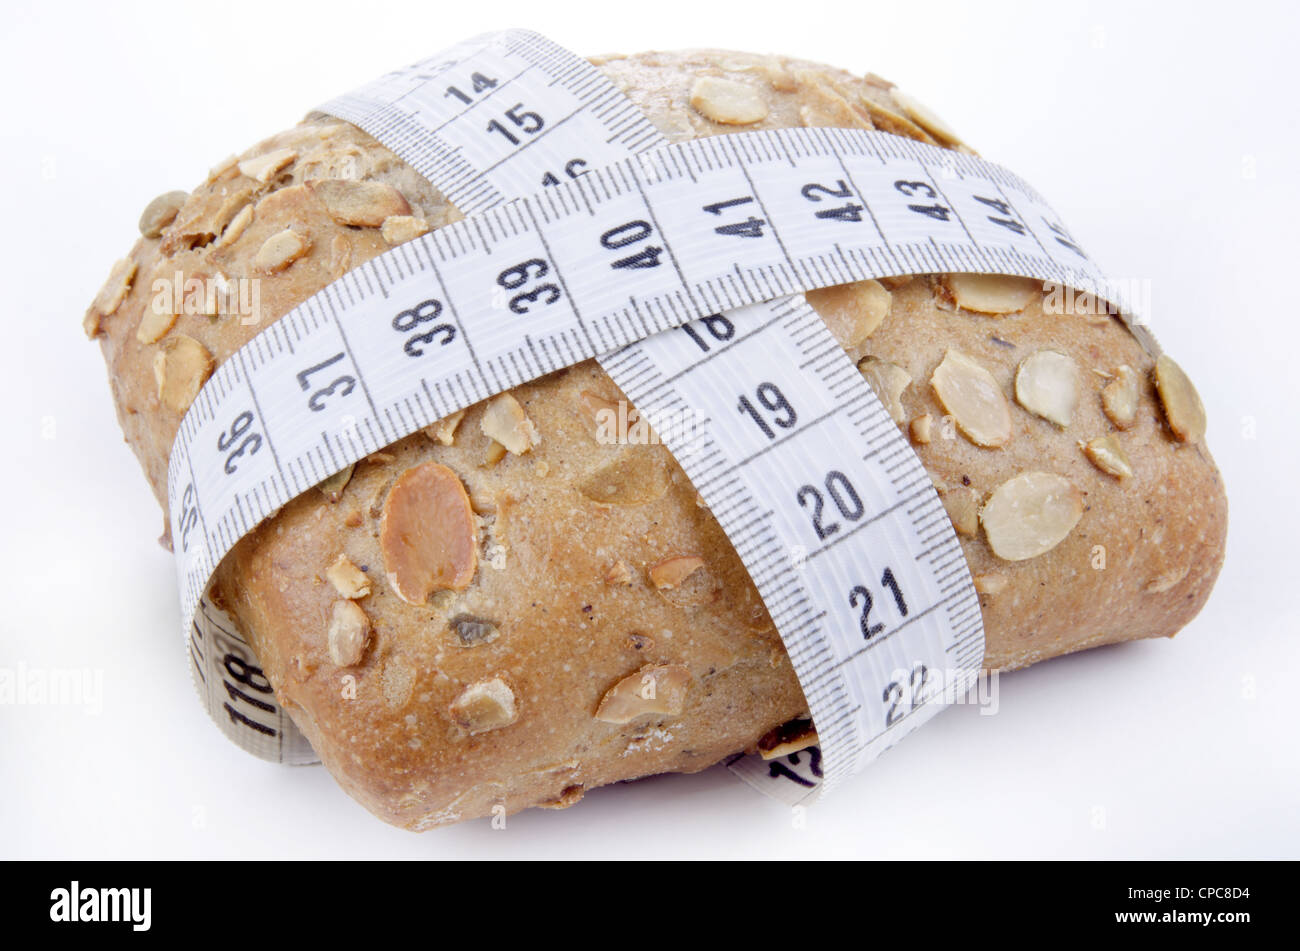 home baked roll with centimeter measuring tape - Stock Image